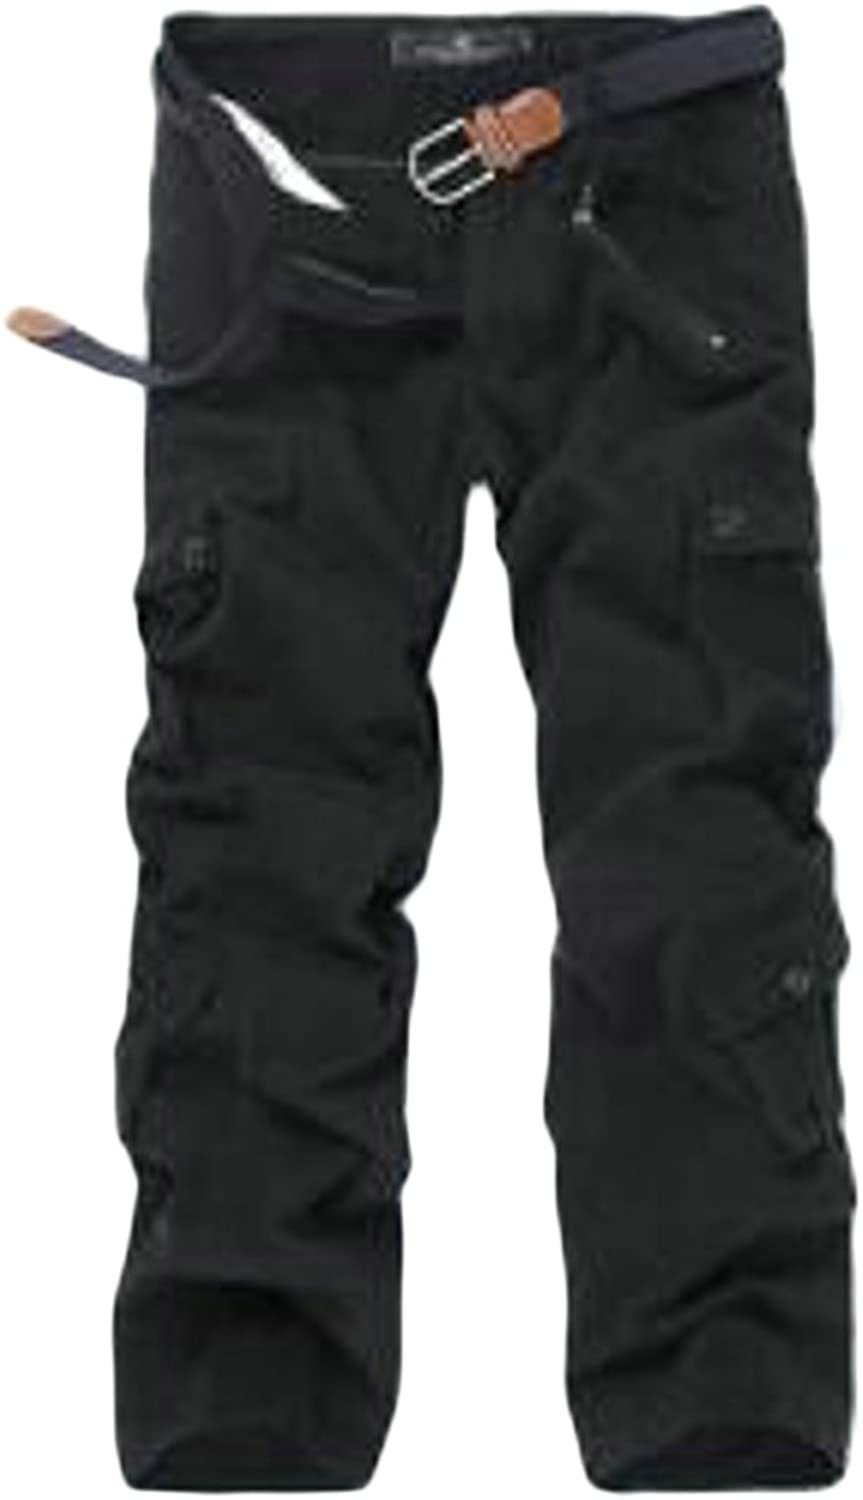 69e0b38f5e03b6 Lutratocro Mens Utility Multi Pocket Big and Tall Tall Tall Regular Cargo  Pants 8b0df7